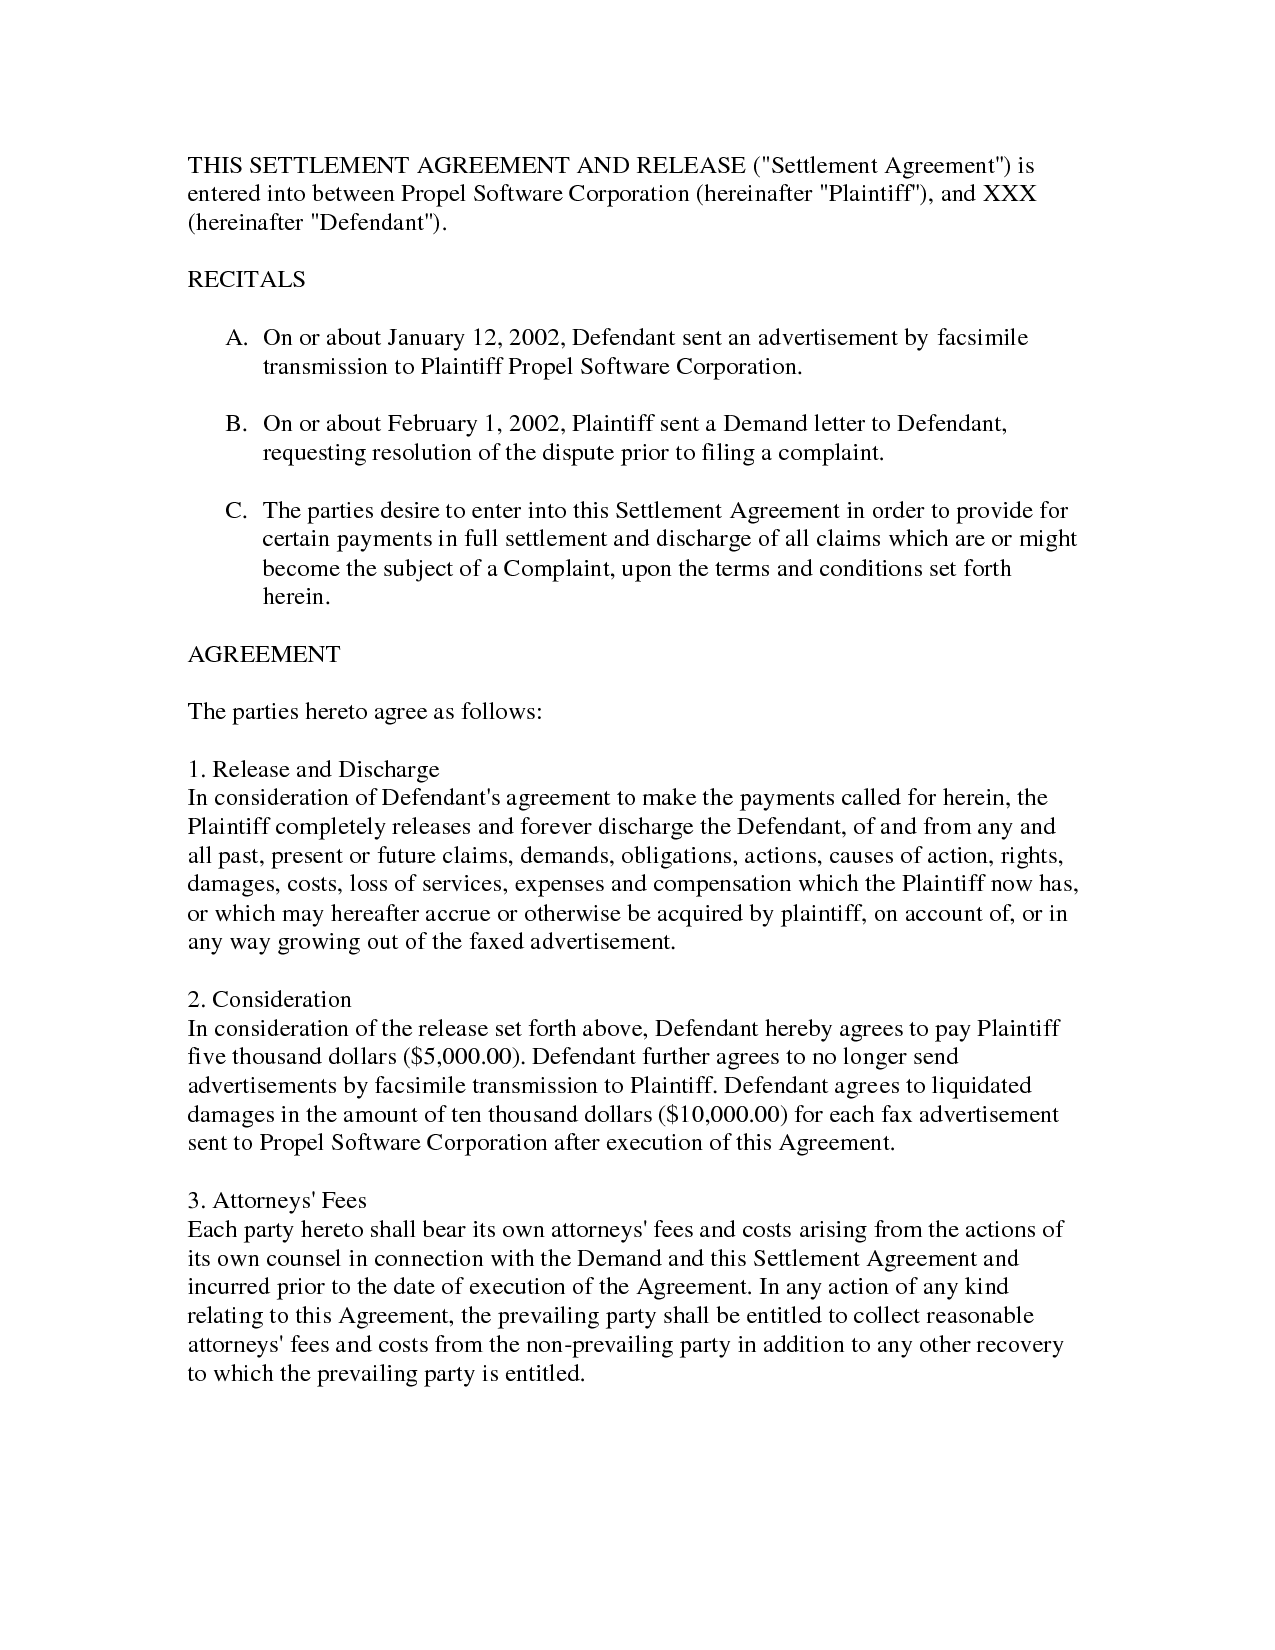 settlement agreement samples Ecza.solinf.co